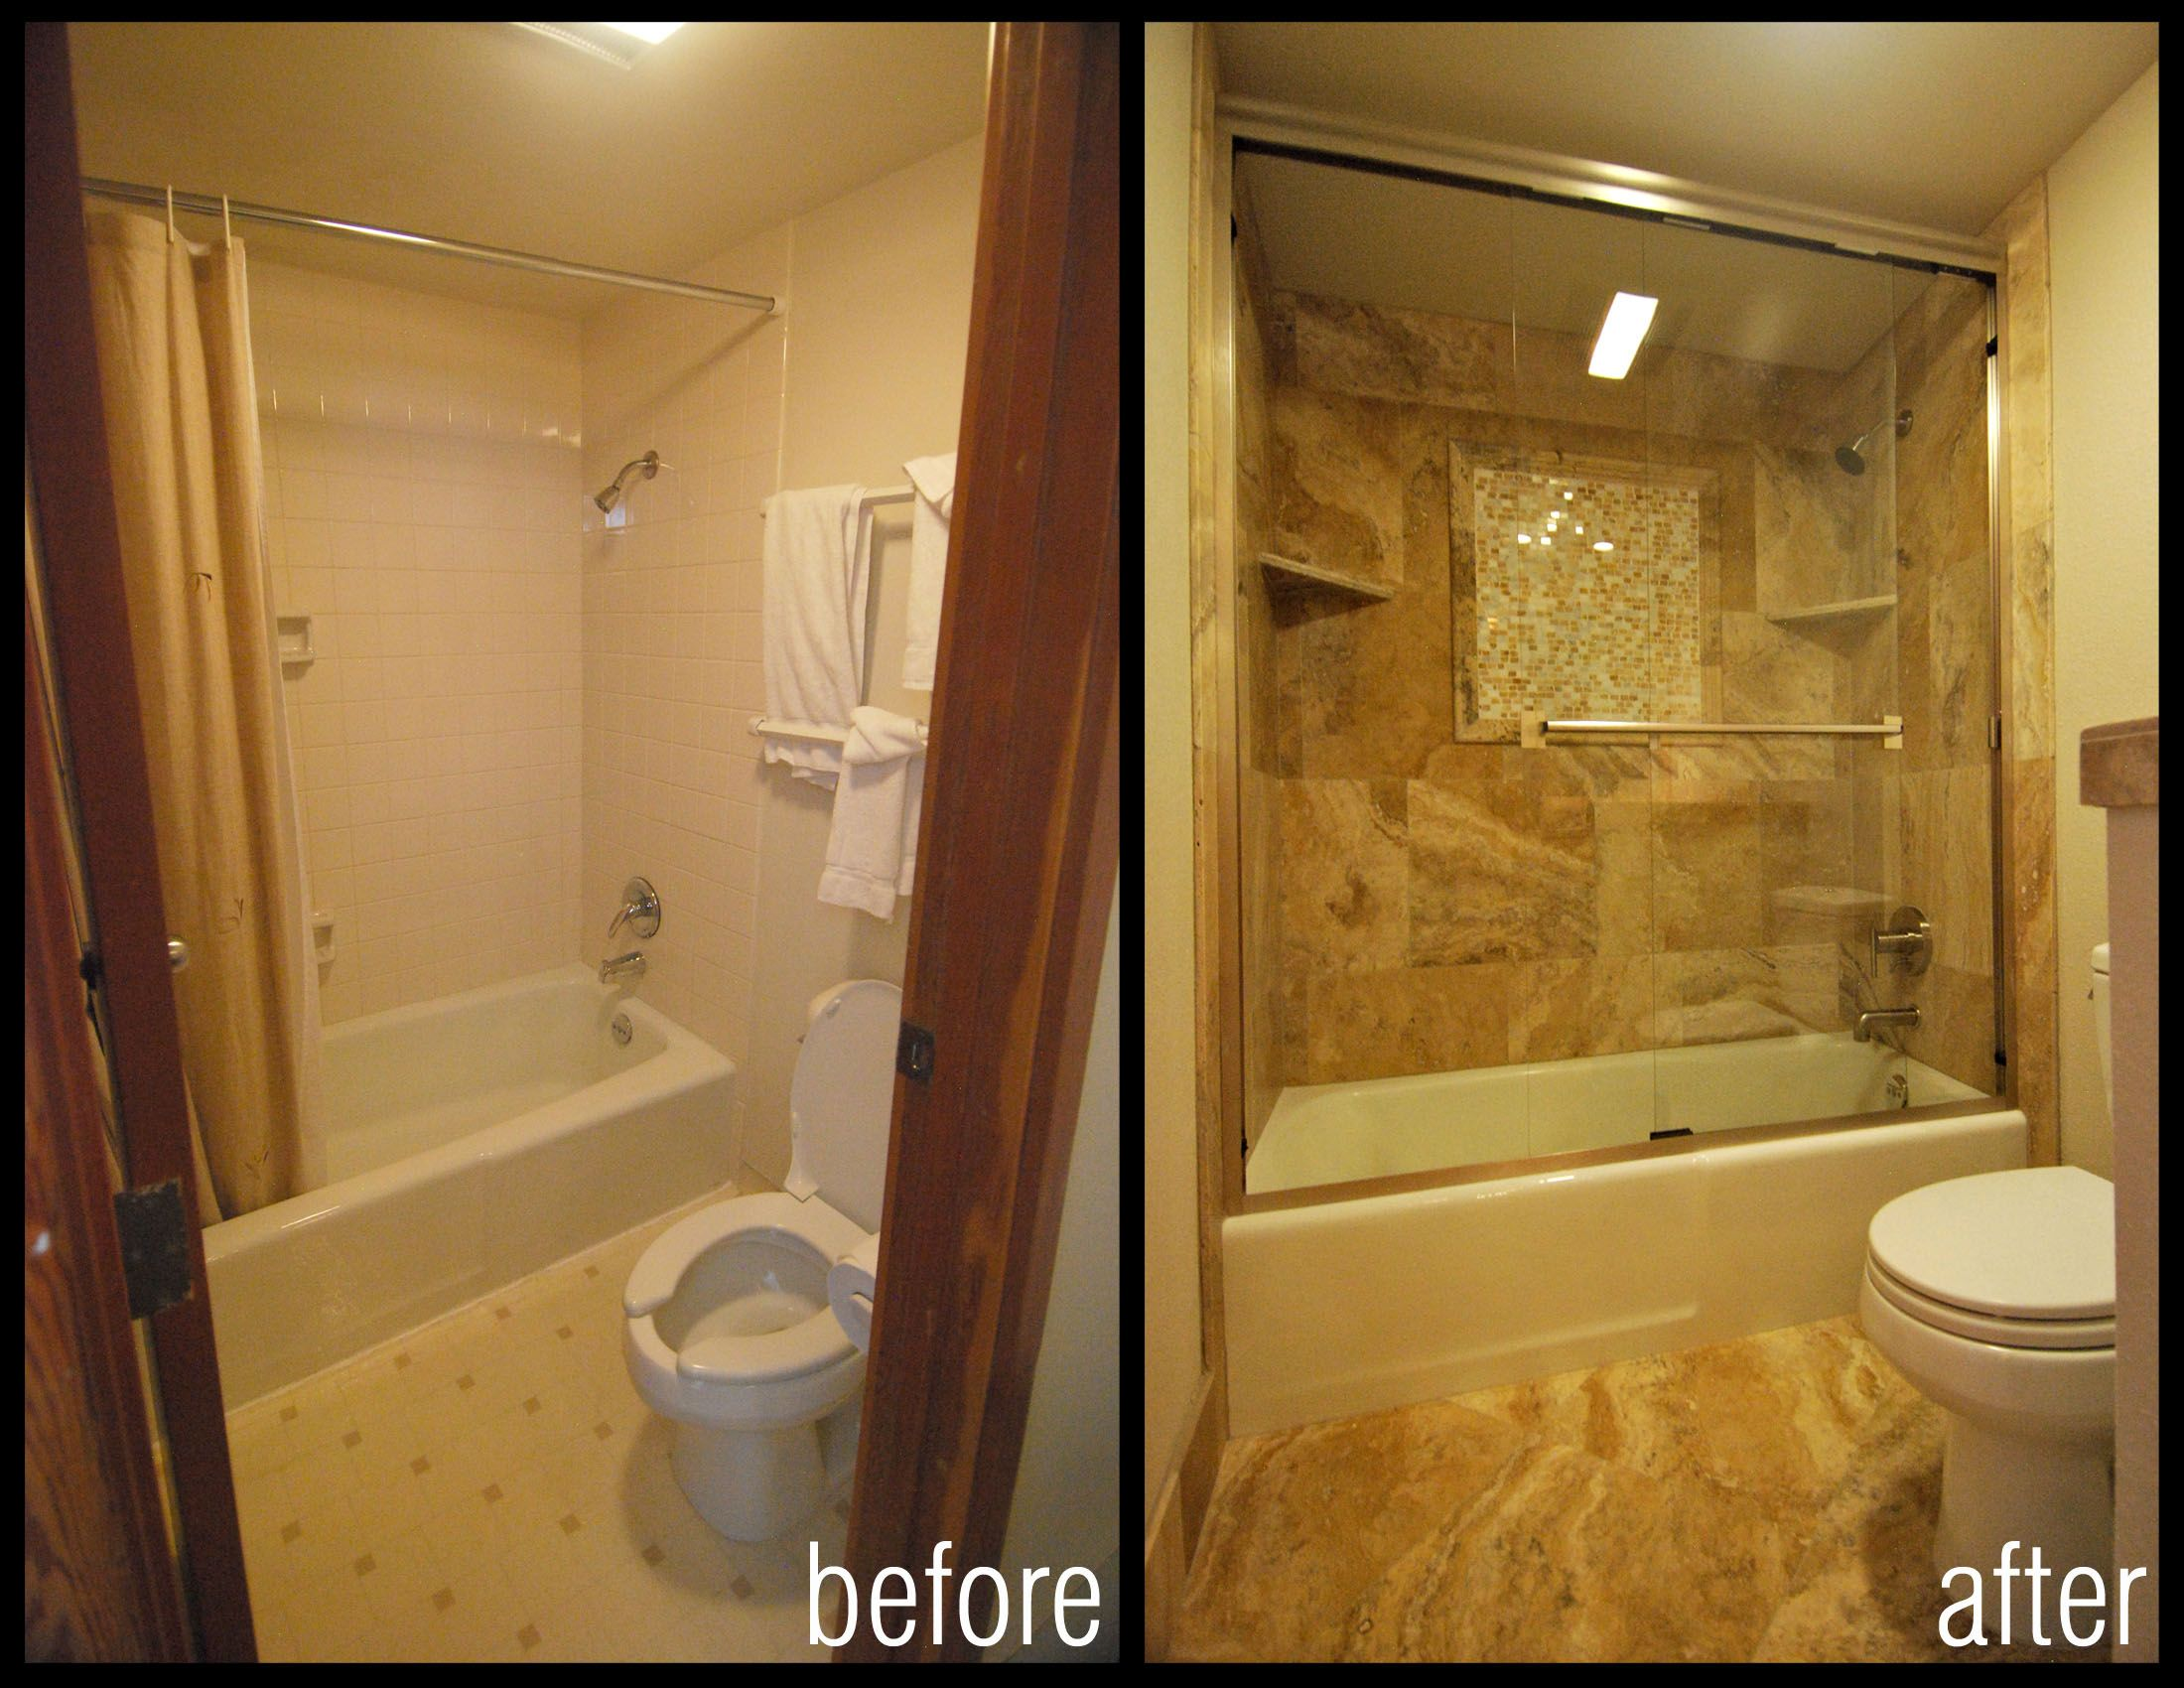 Bathroom Makeovers And Remodeling Ideas bathroom remodel ideas before and after - home design